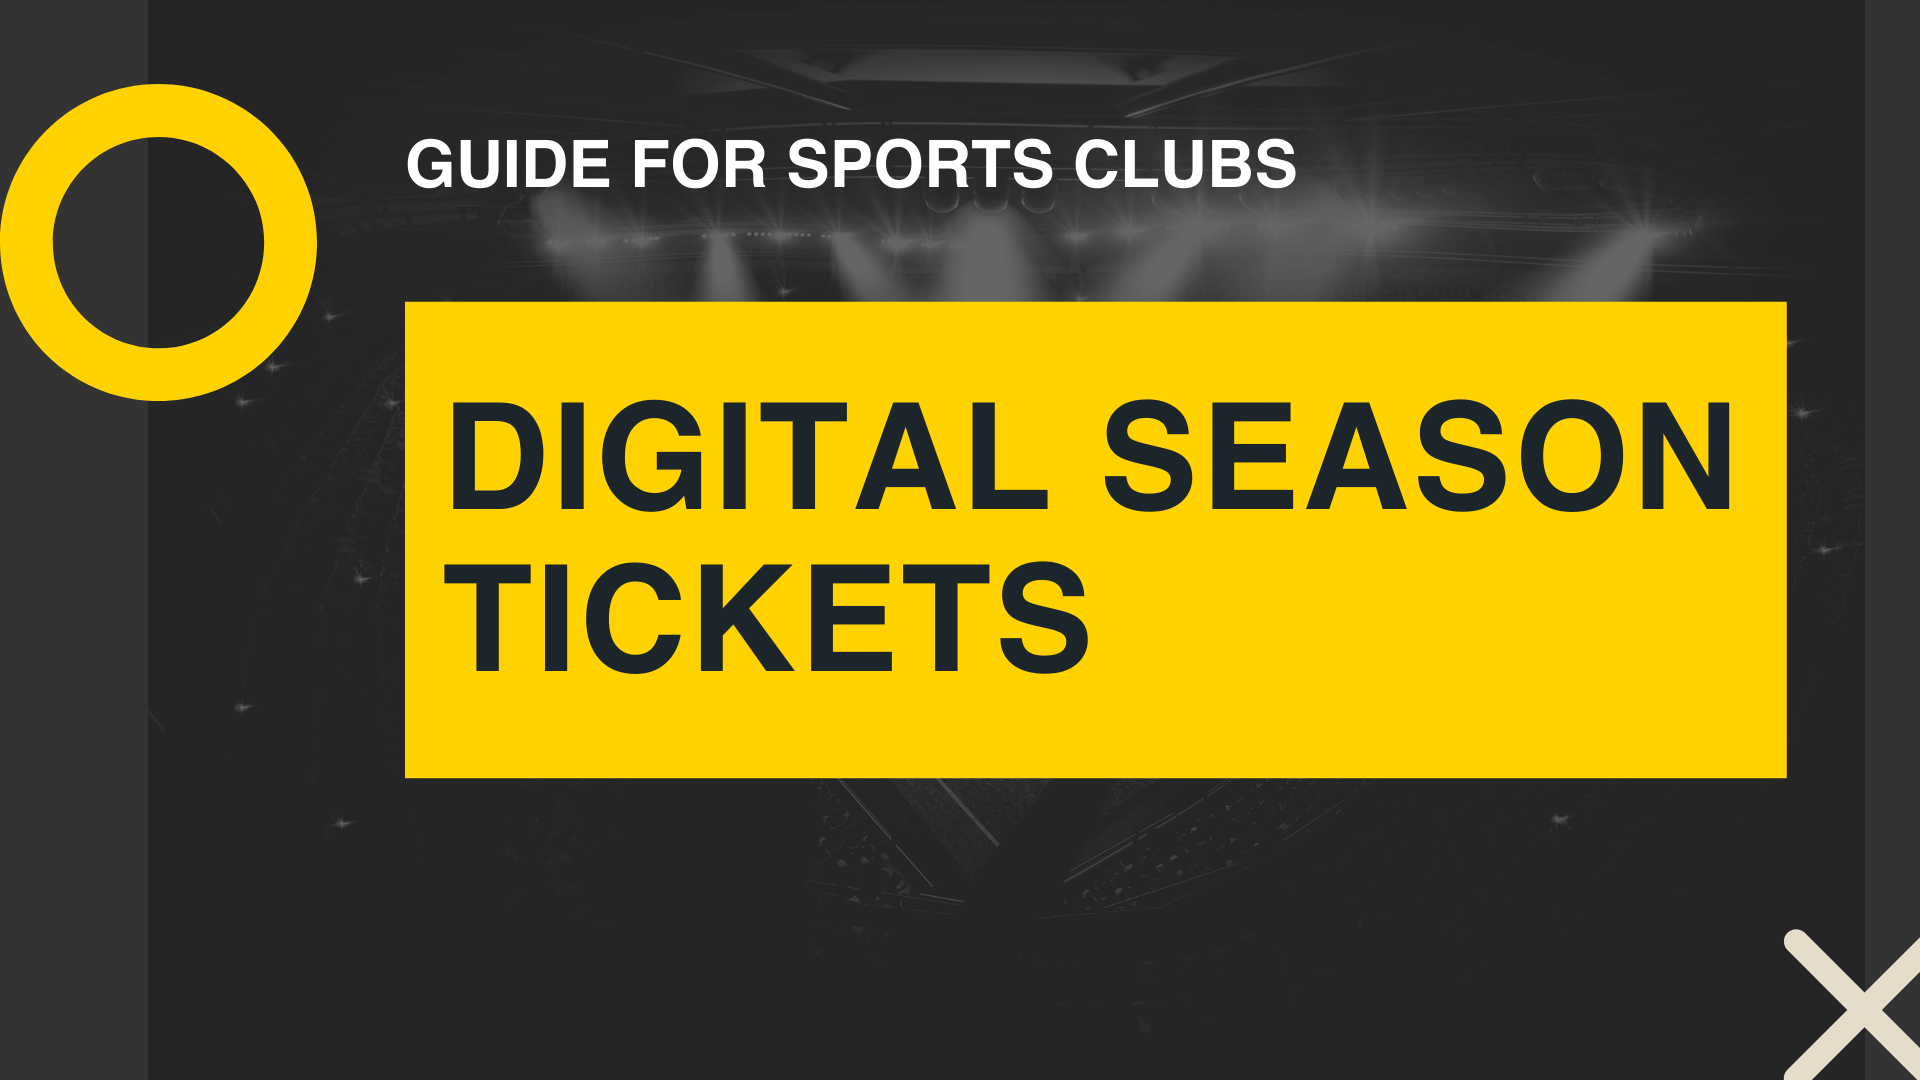 Digital season tickets guide for sports clubs